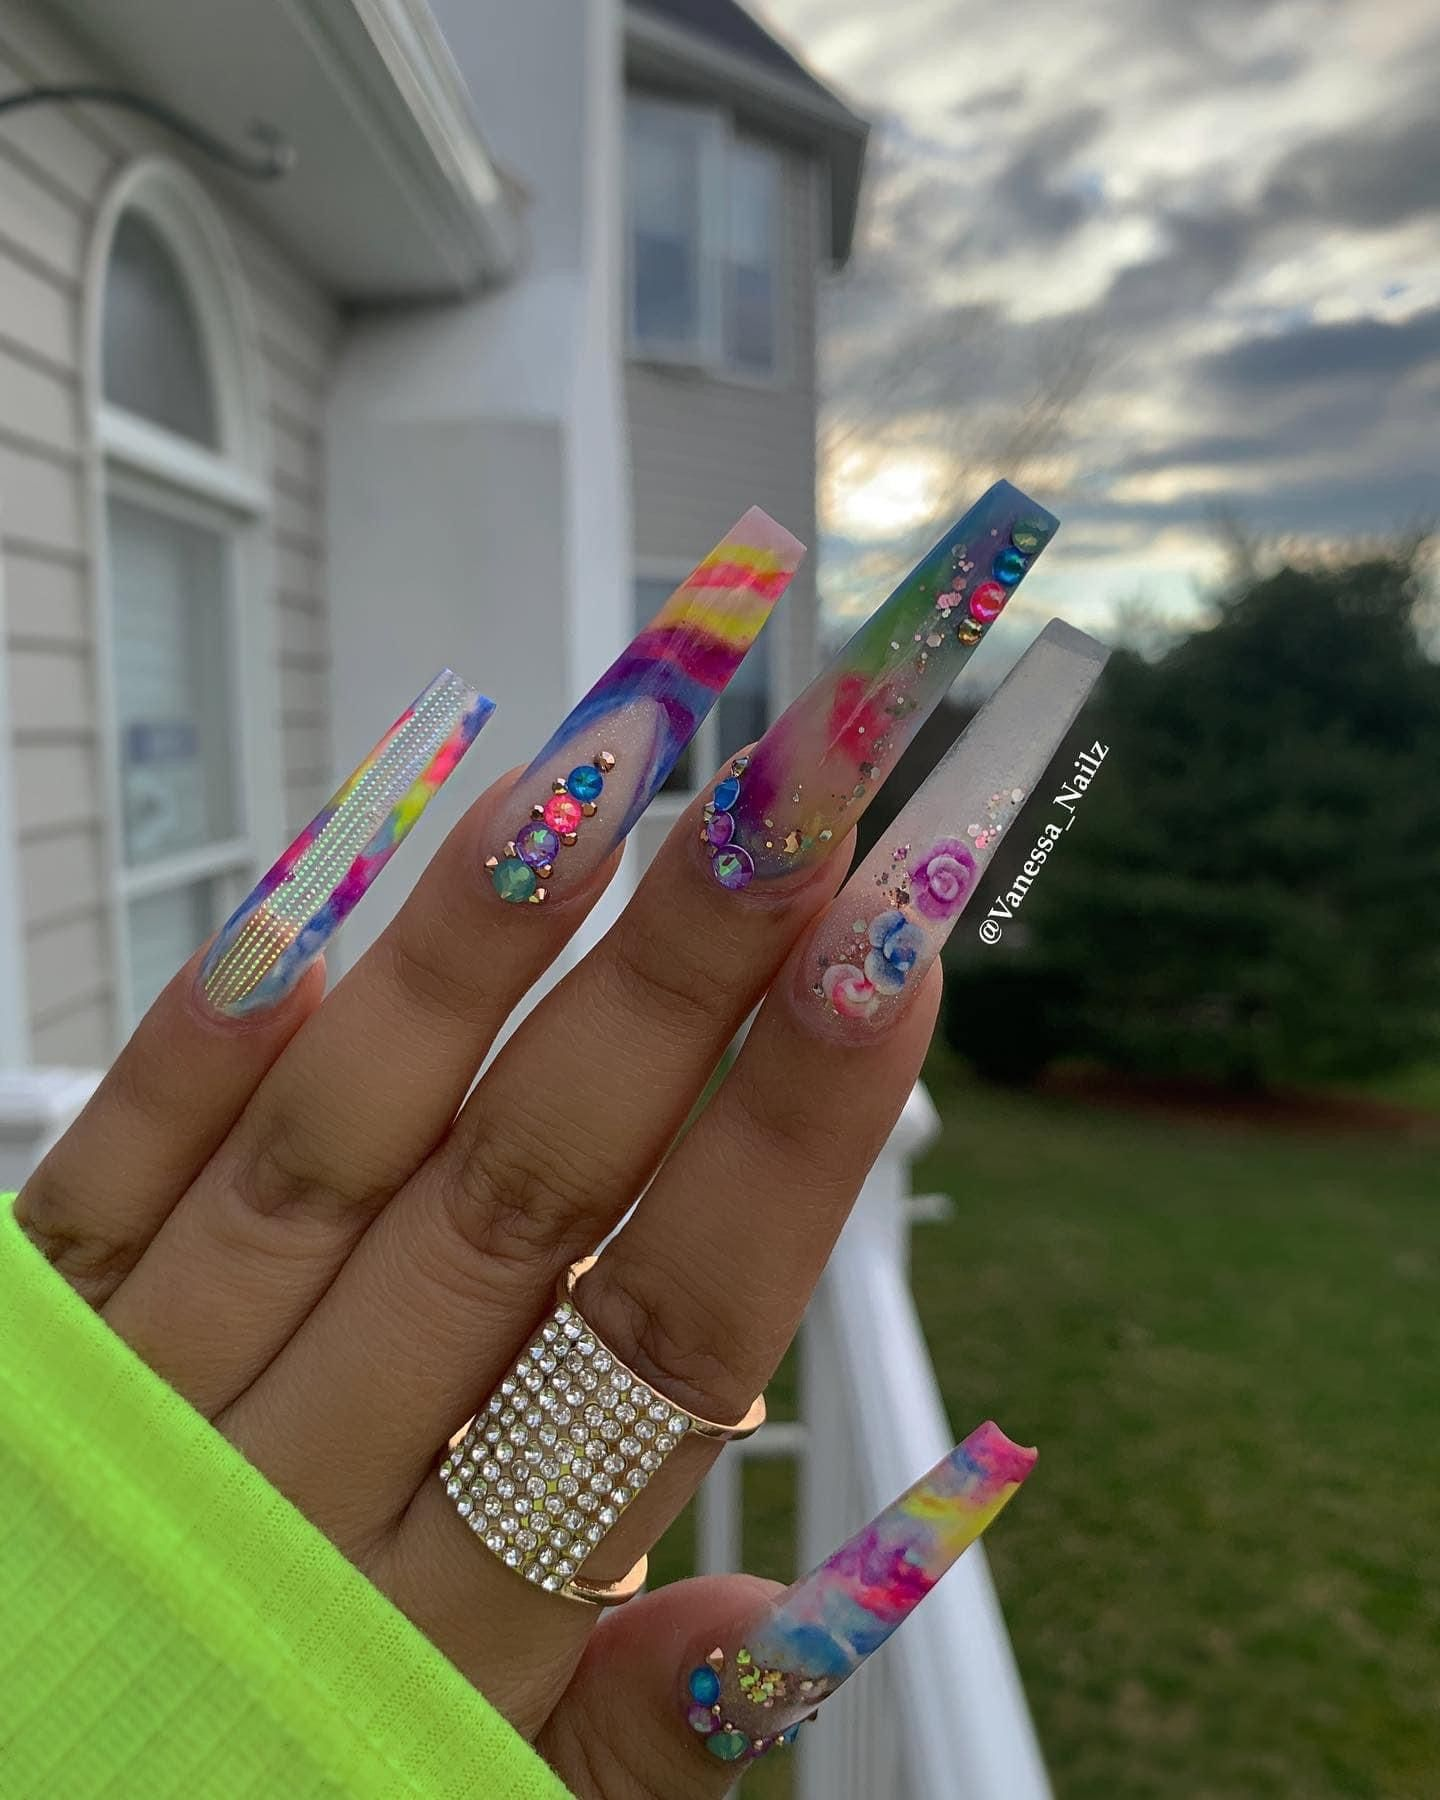 Pin By Tanzyah Boston On Nails In 2020 Square Acrylic Nails Acrylic Nails Bling Acrylic Nails